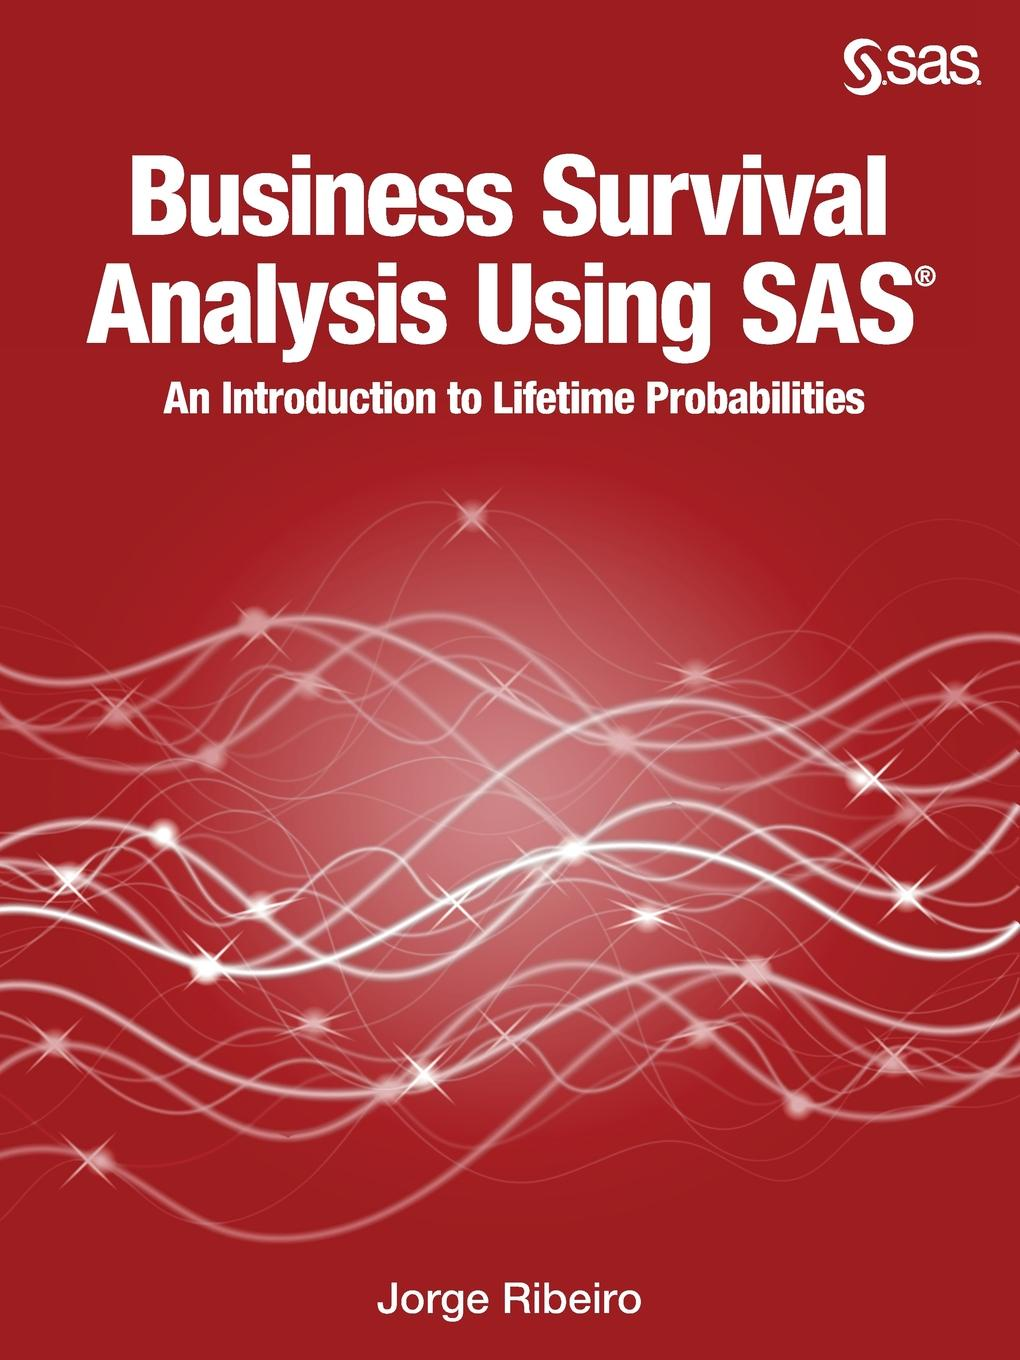 все цены на Jorge Ribeiro Business Survival Analysis Using SAS. An Introduction to Lifetime Probabilities онлайн